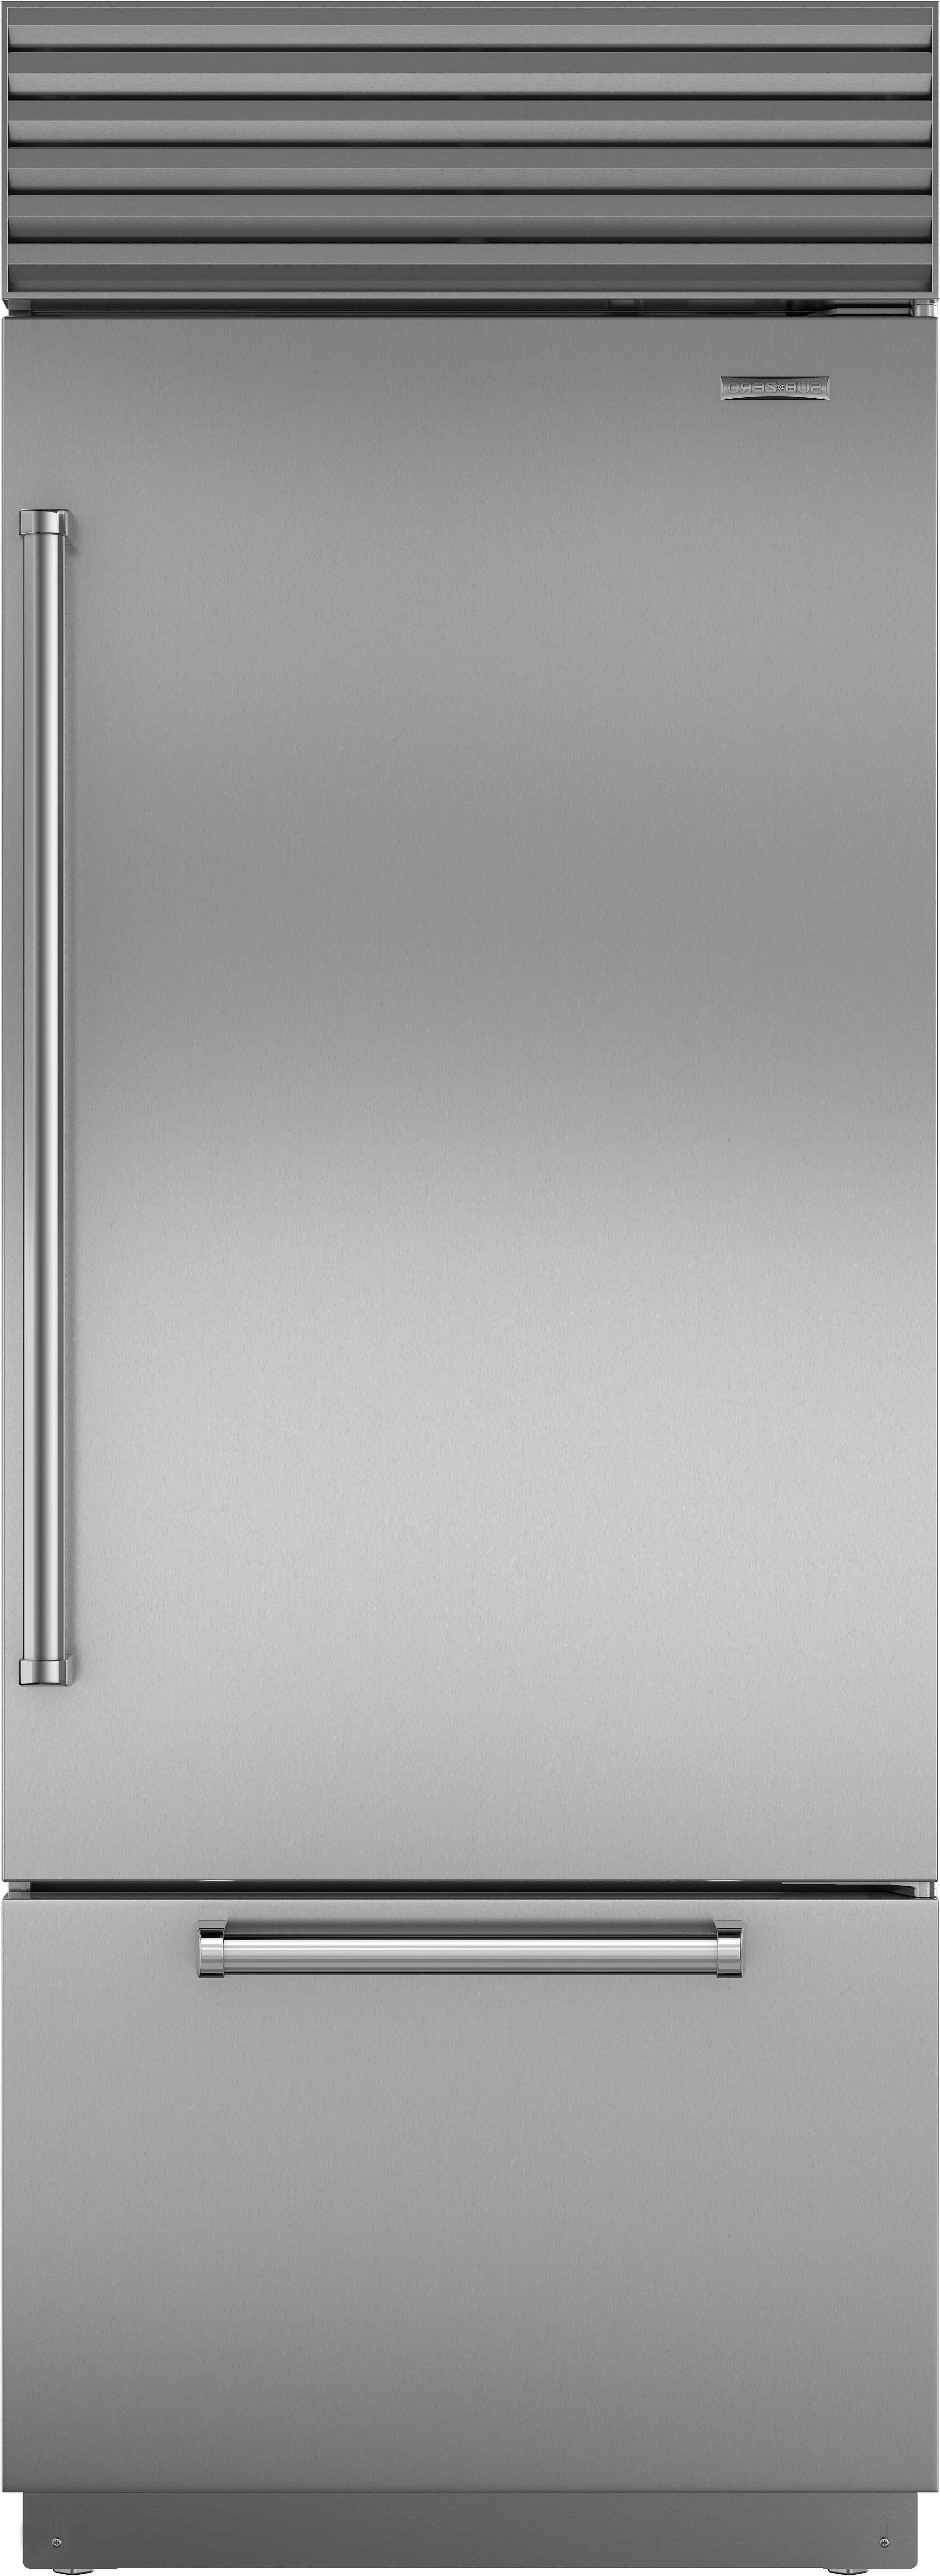 Sub zero counter depth refrigerator - Sub Zero Counter Depth Refrigerator 49